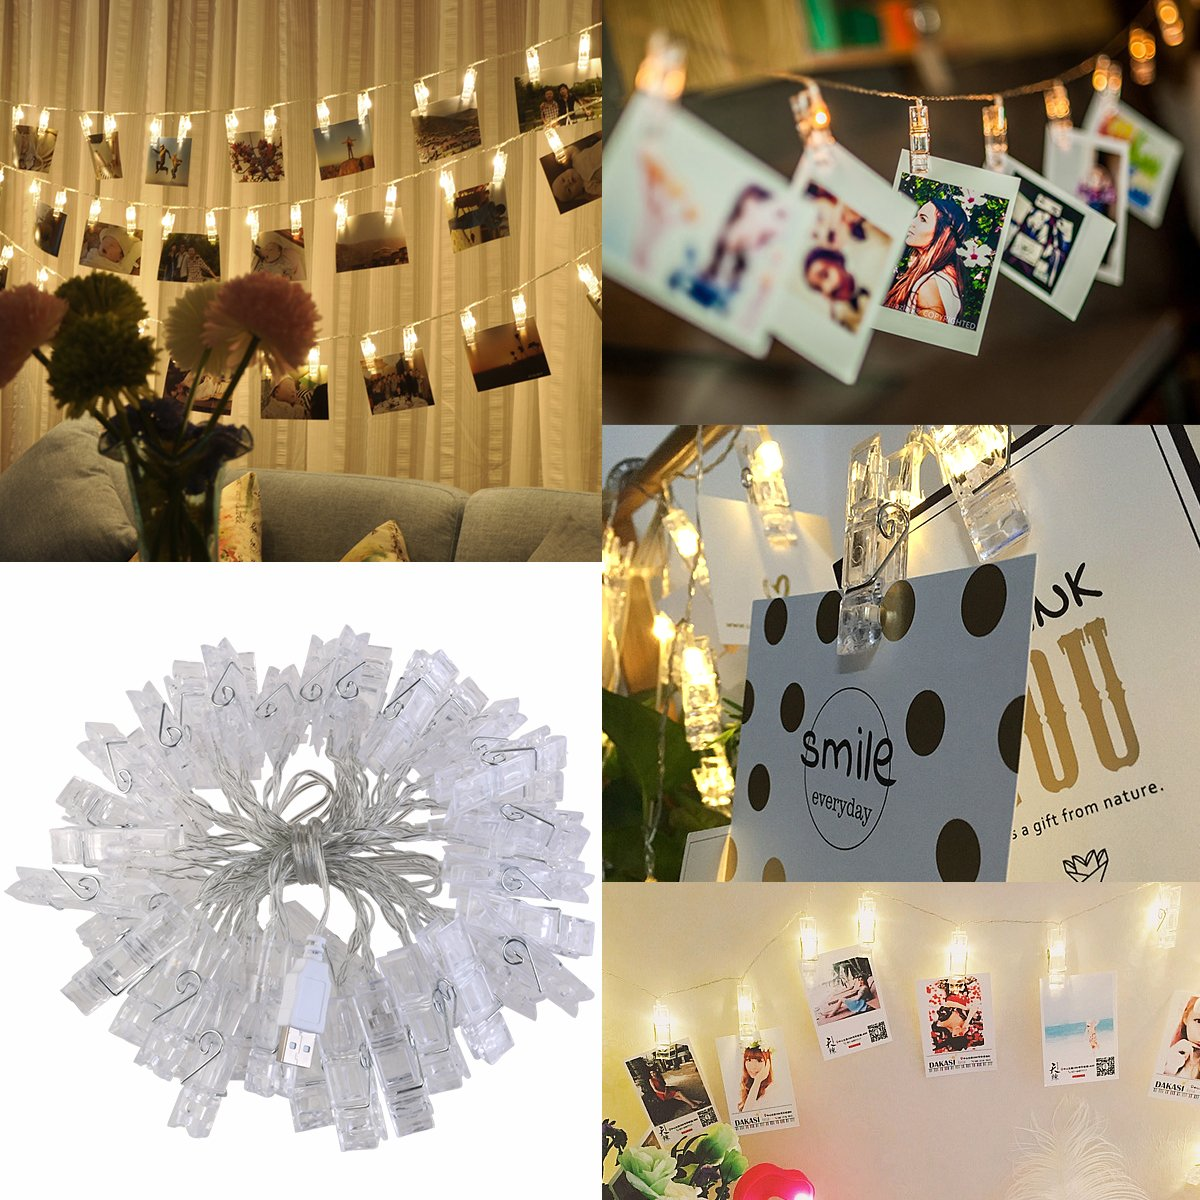 LEDMOMO 40 LED Photo Clip String Lights,USB Powered,String Lights for Home/Party/Christmas Decor